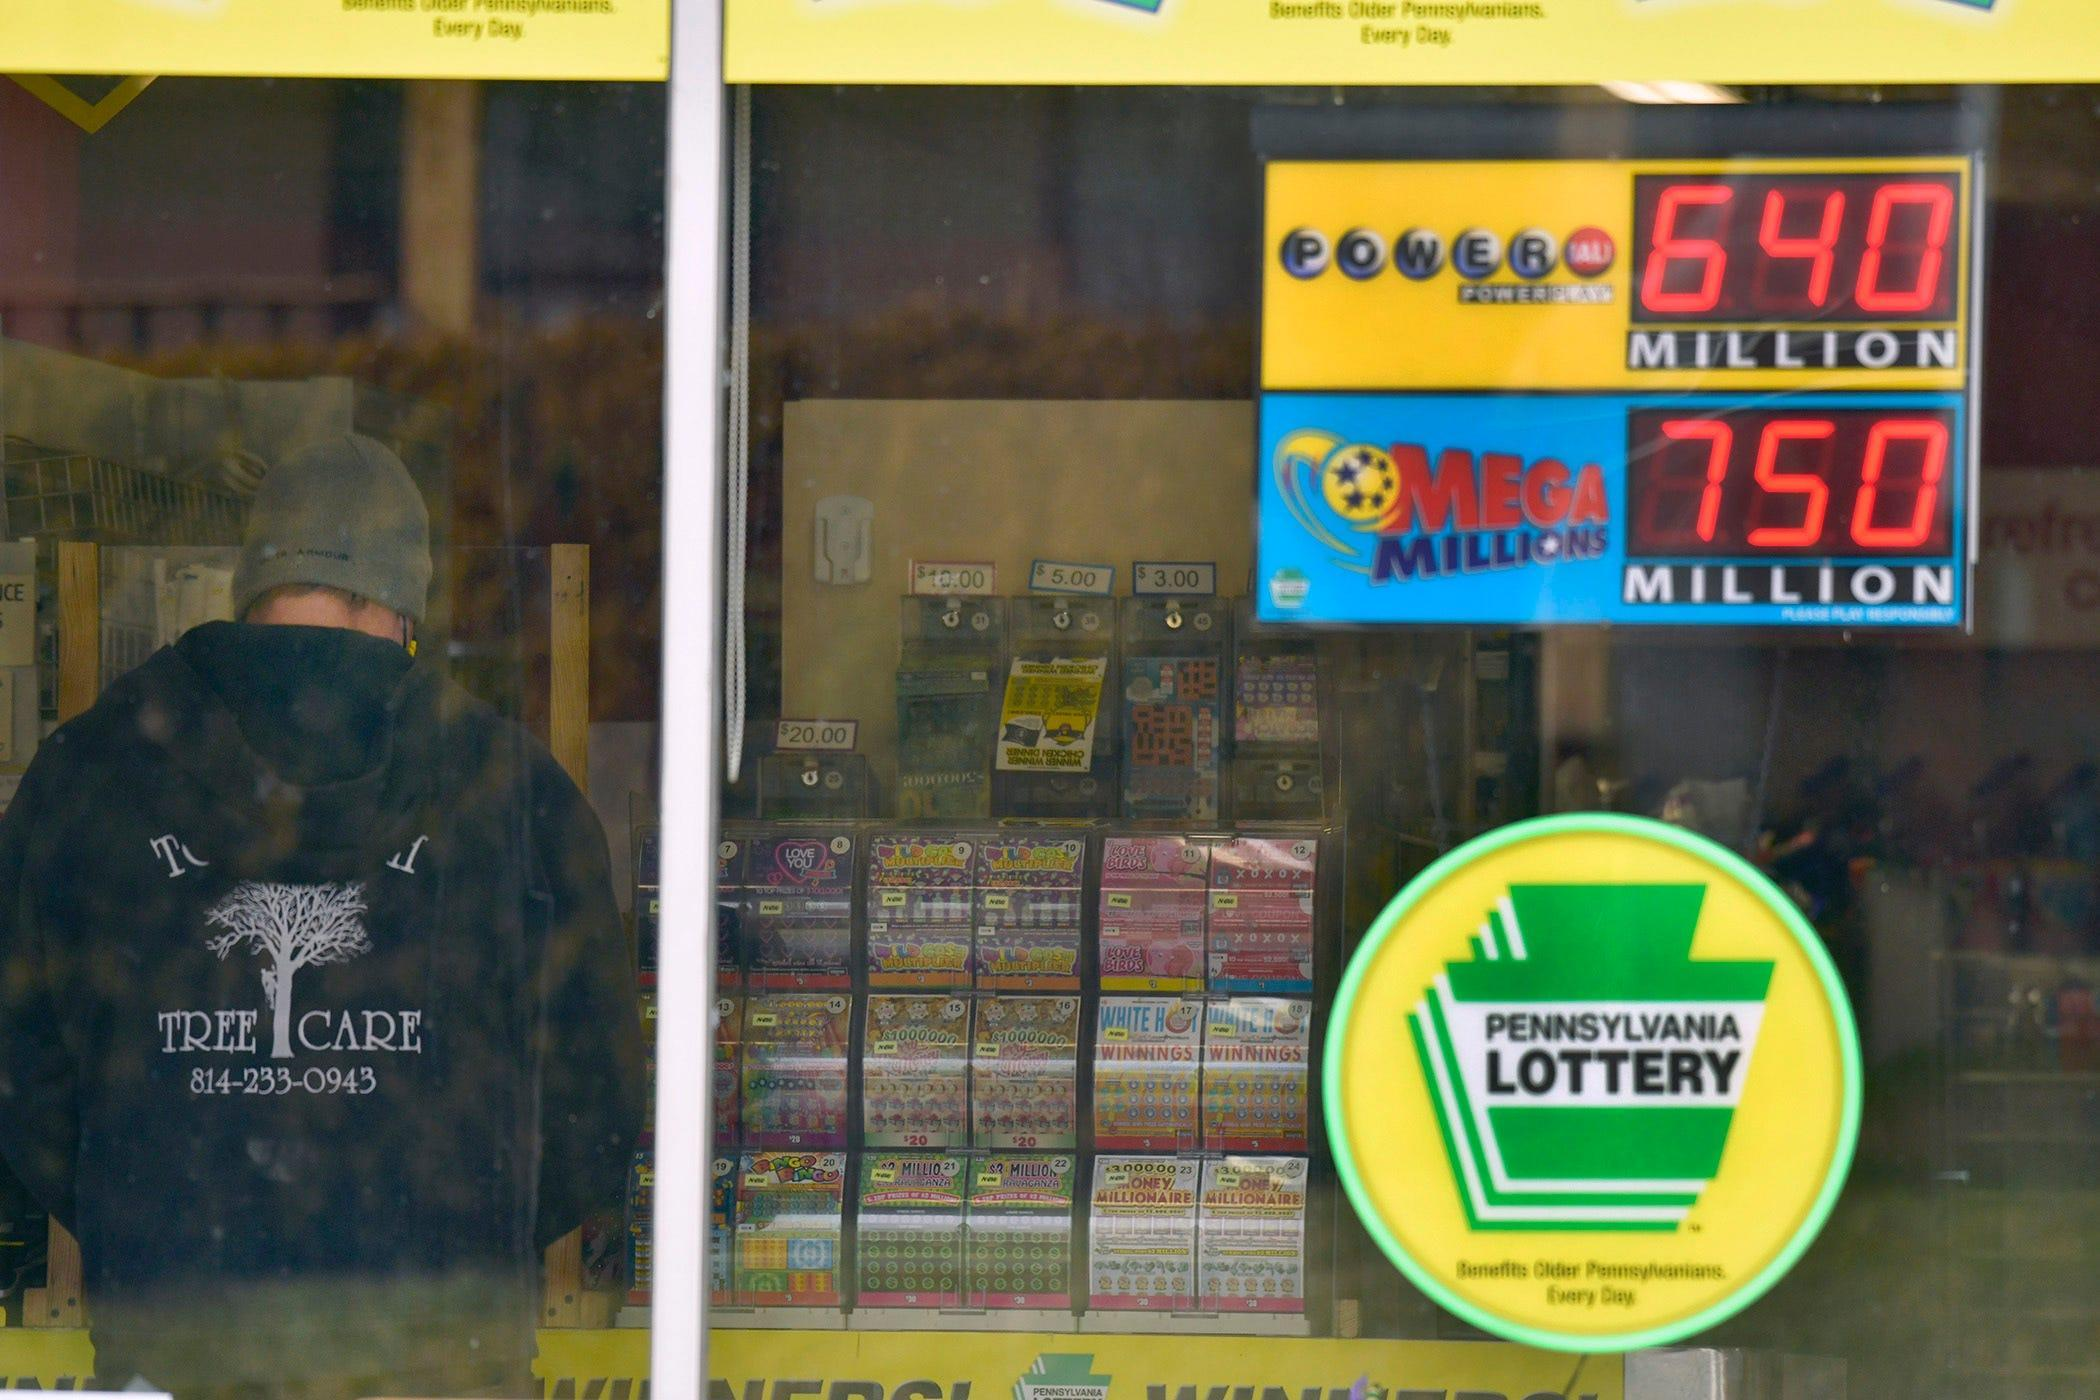 Mega Millions numbers drawn, search for winners begins